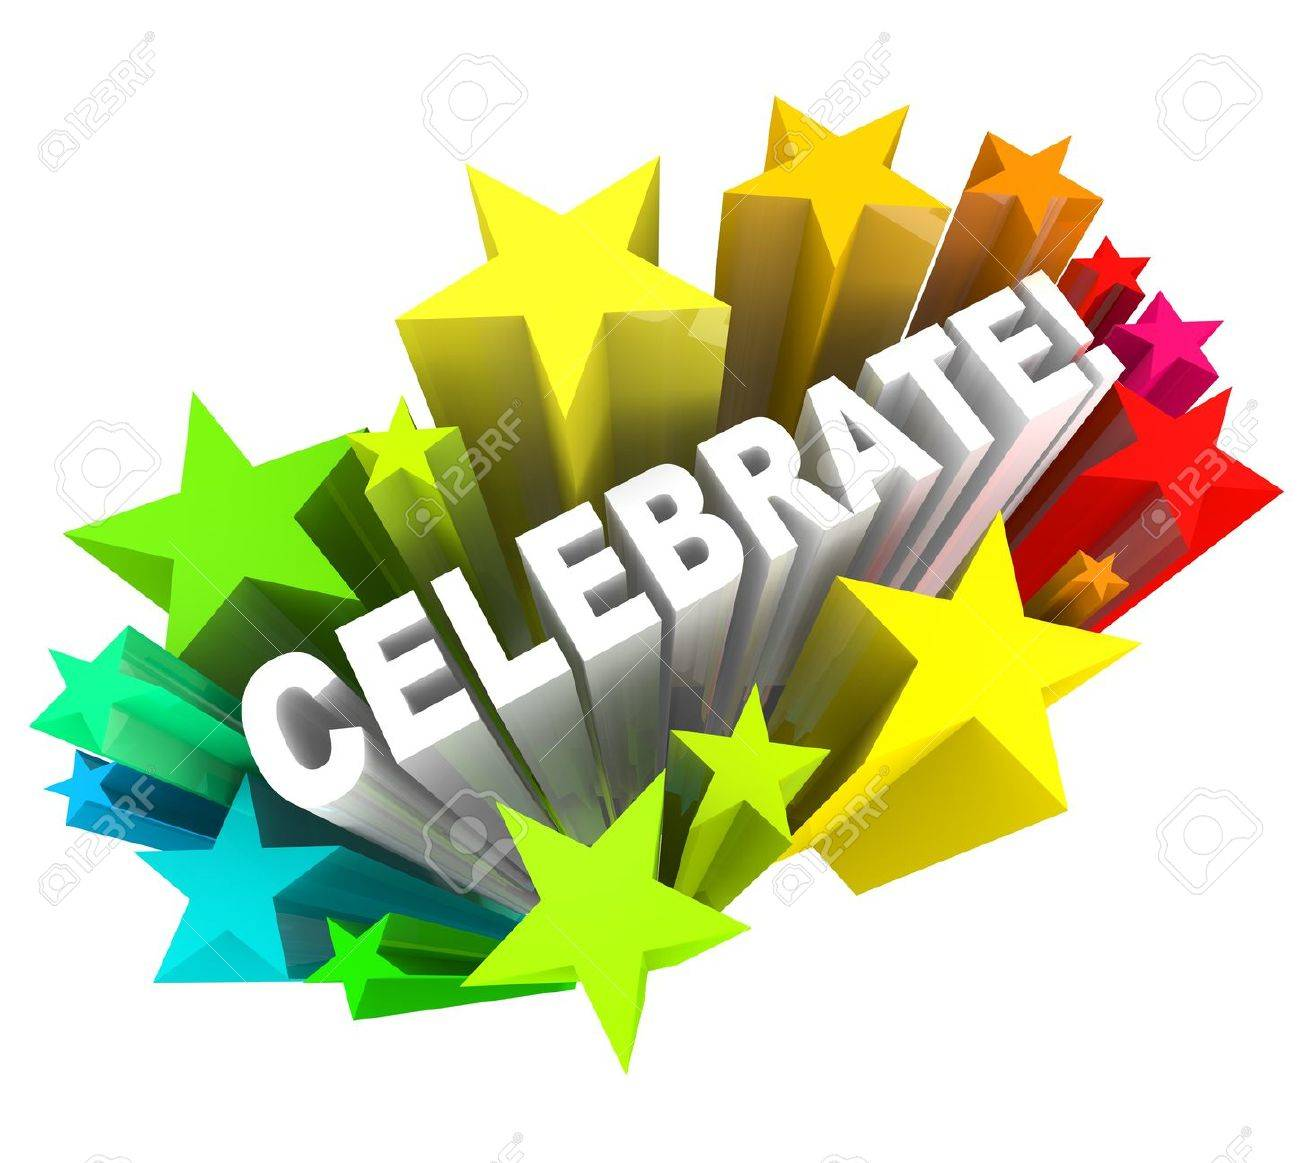 Celebration - Stock Photo The Word Celebrate Surrounded By Shooting Stars Symbolizing Excitement For A Party Or Celebration